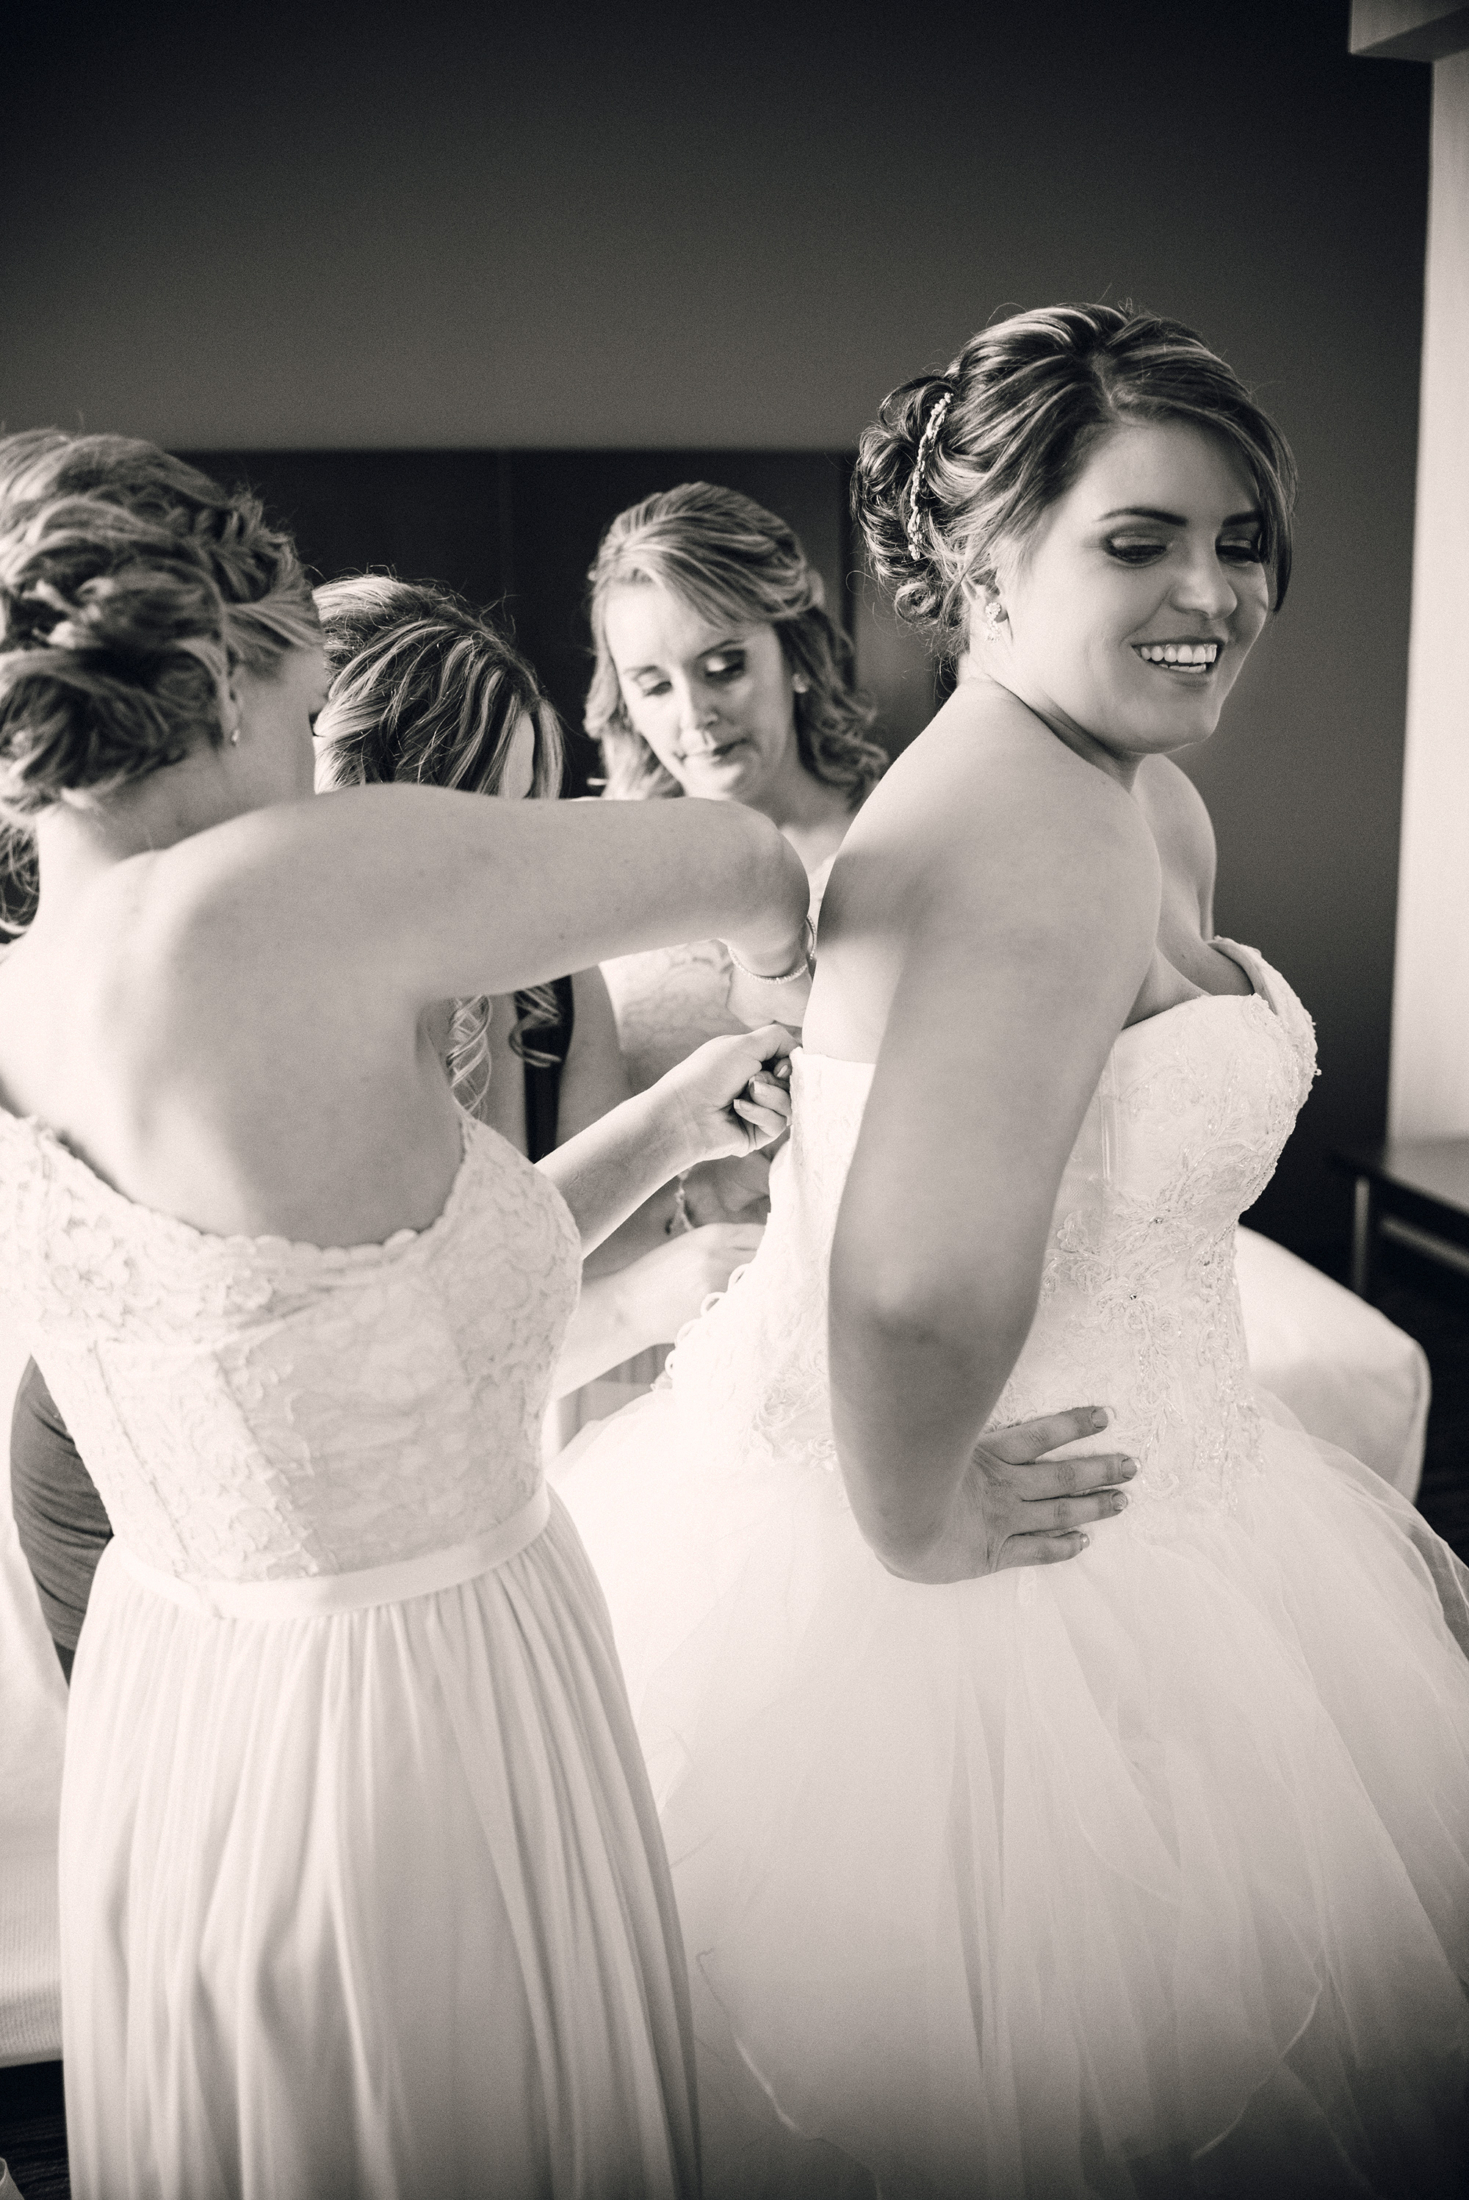 Bride_Getting_Ready_Photos_Verveine_Studios